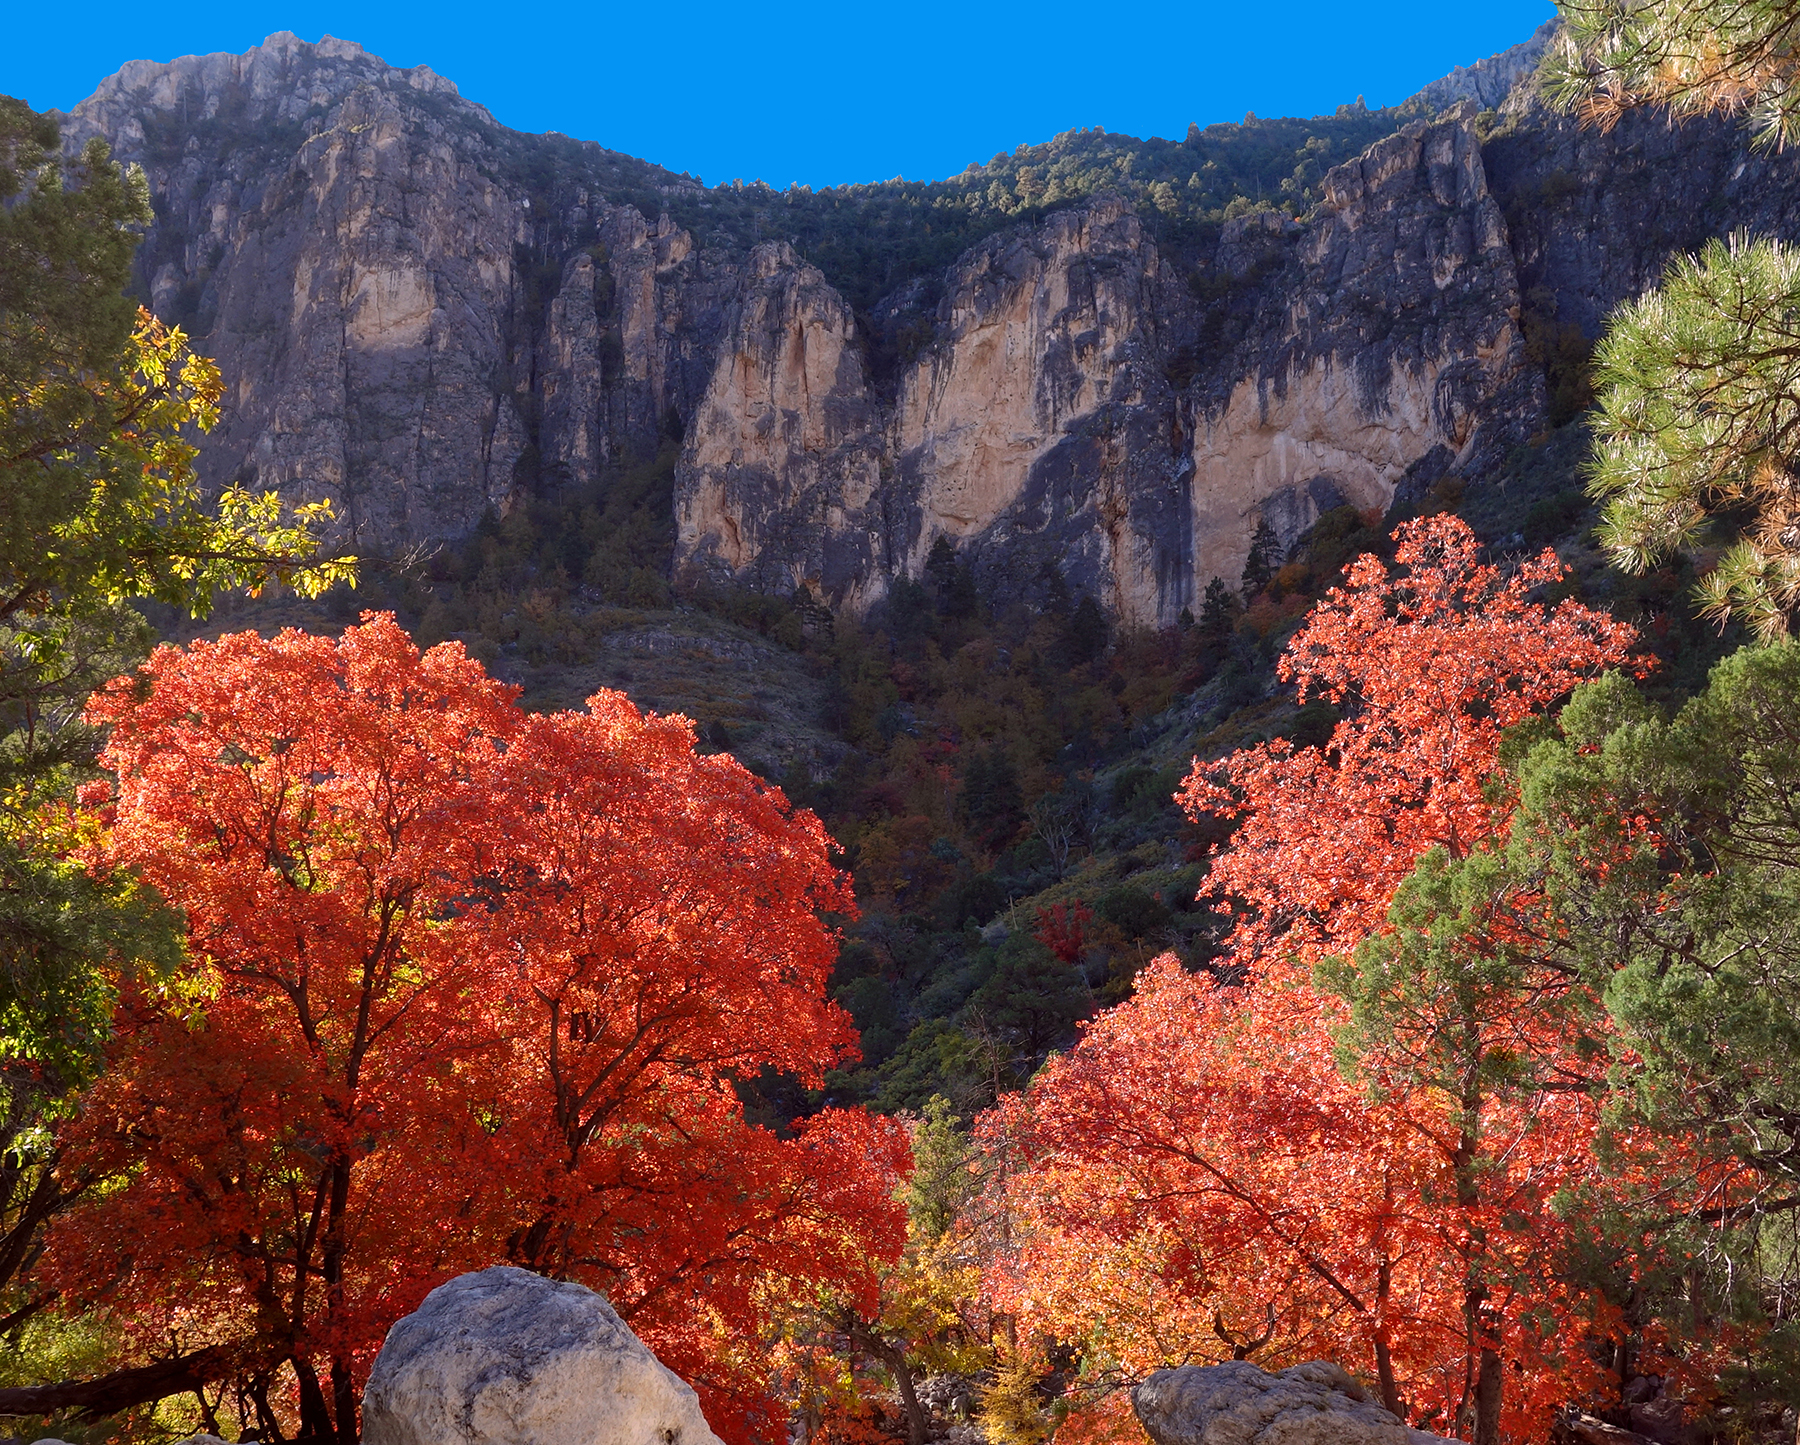 Guadalupe Mountains National Park in Texas